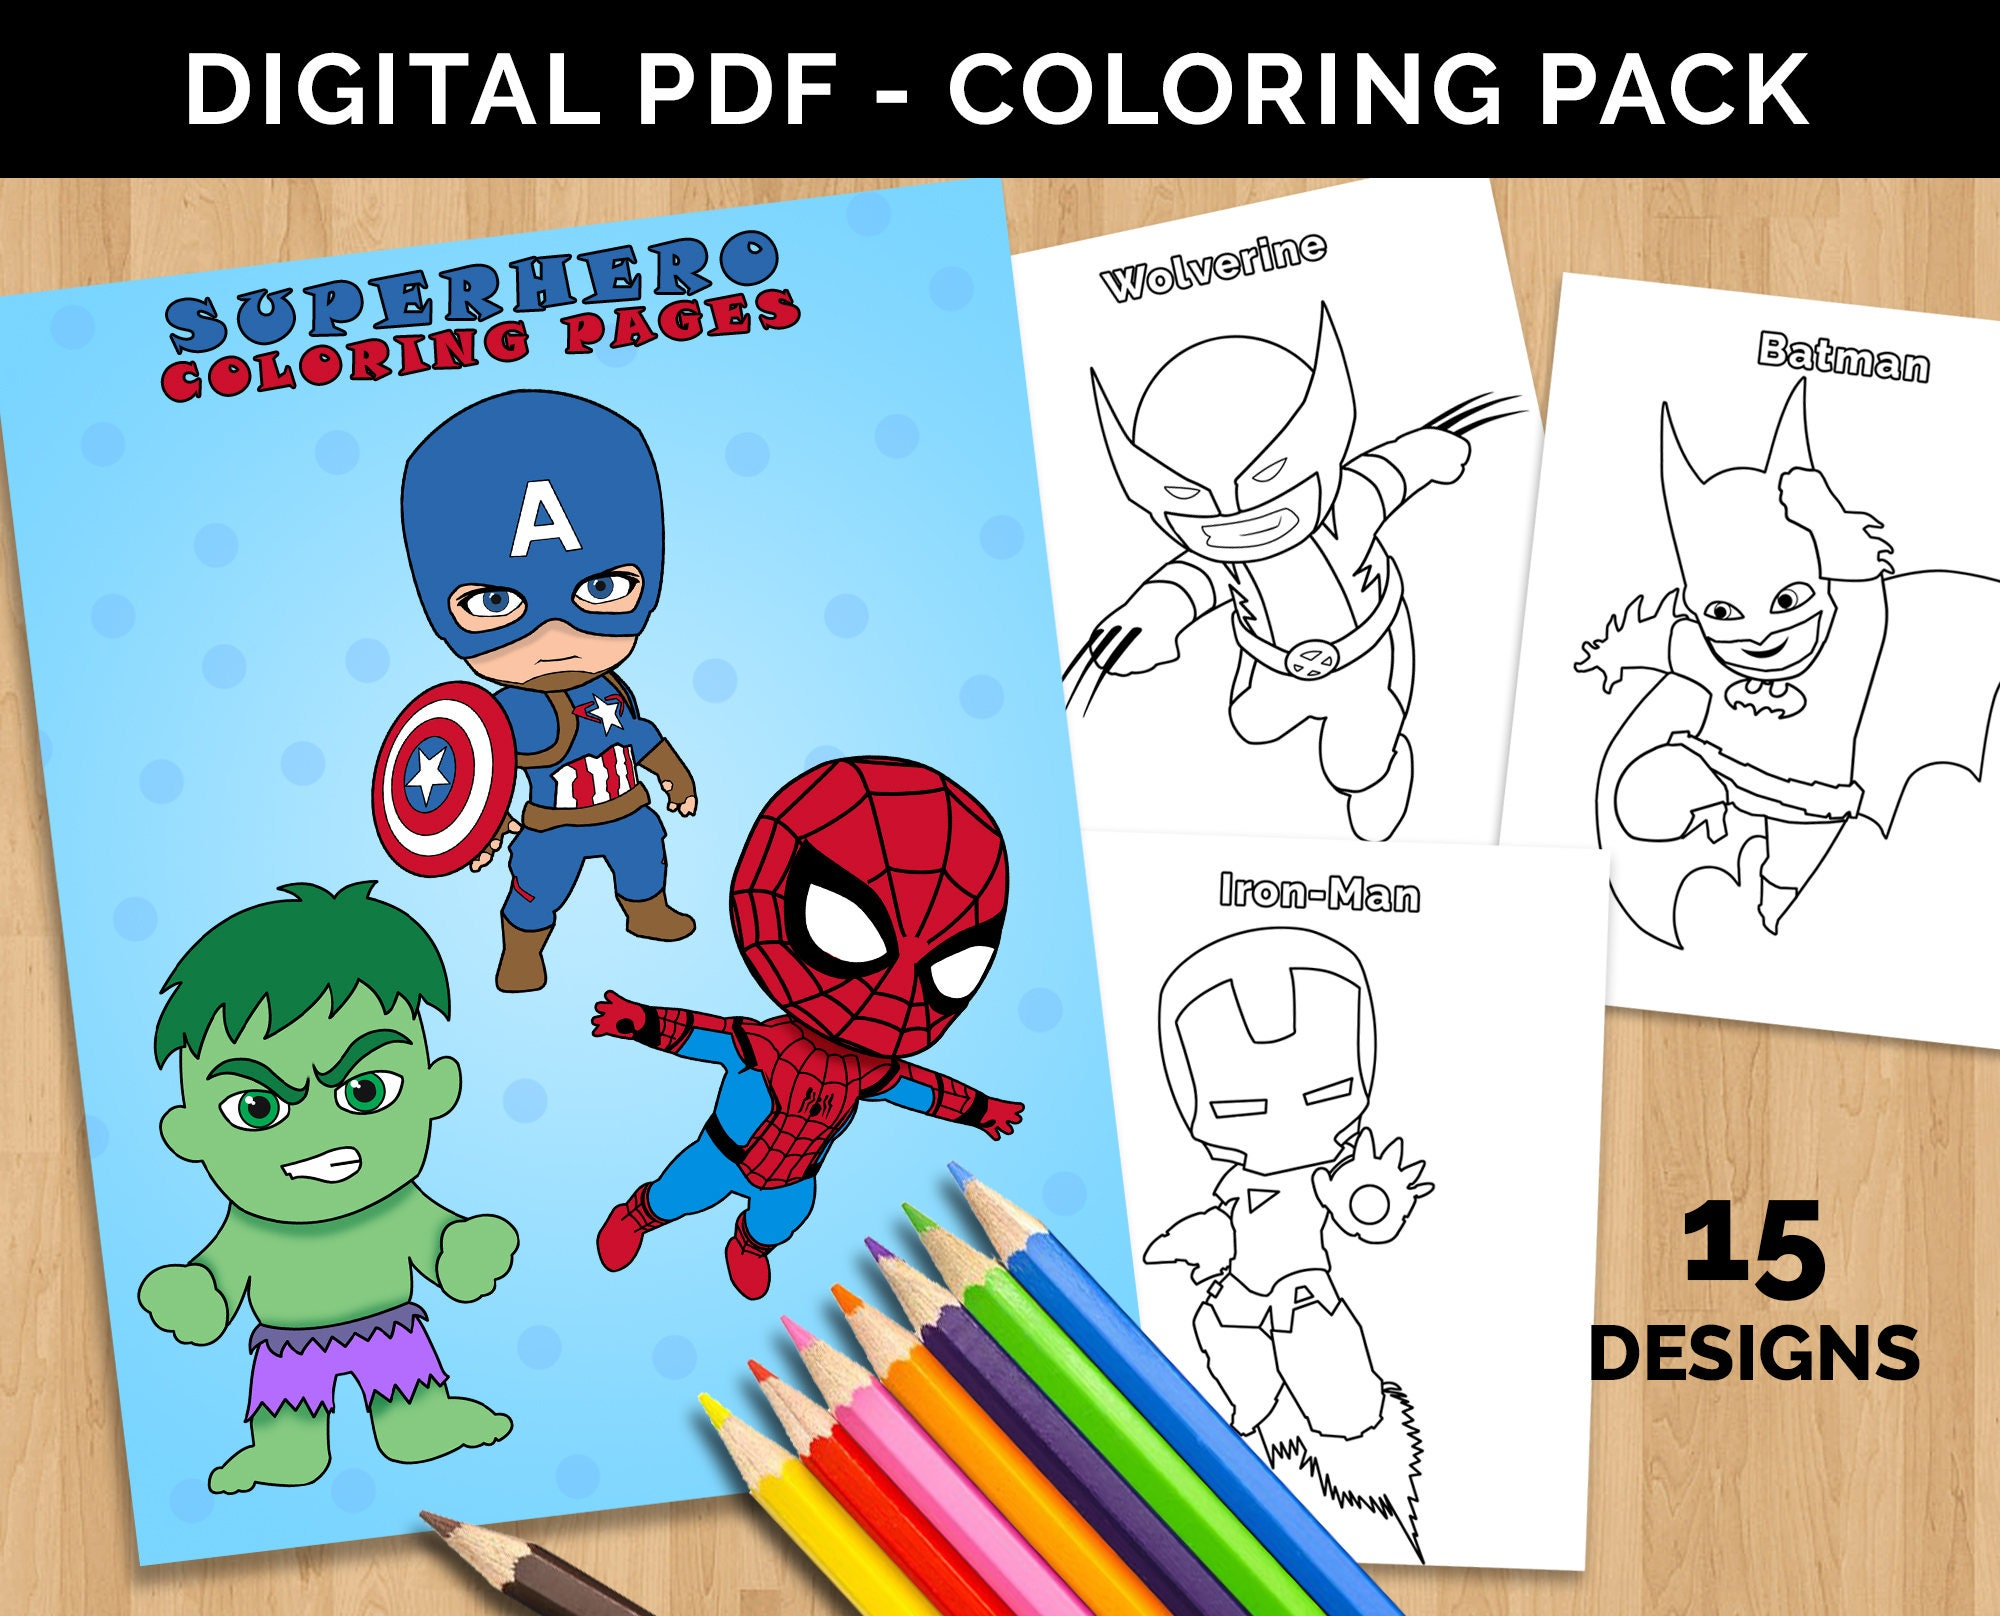 Color Superheroes Marvel Kids Avengers Coloring Pages Cute Etsy Iron Man Circuit Superhros Comics Logostore Printable Superhero Art Digital Book Spiderman Captain America